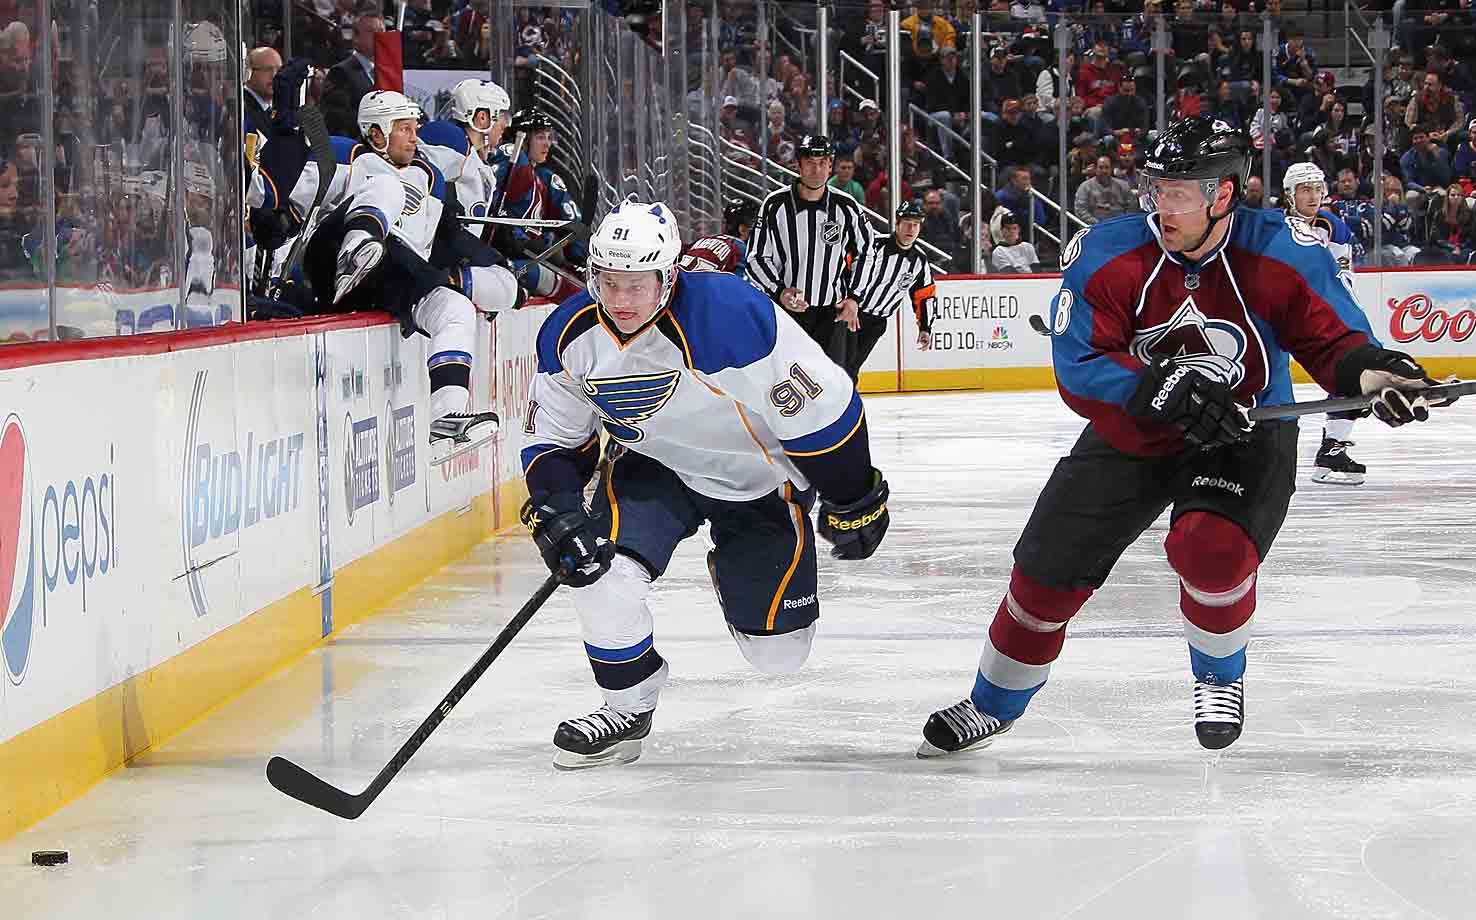 The 16th pick in the 2010 NHL Draft has had his development slowed by injuries the past two seasons, but showed flashes of his great potential, particularly when he lead the Blues with four playoff goals in six games last spring. Tarasenko has enviable puck-handling skills, strength and the ability to battle, and with the arrival of former KHL teammate/current linemate Joro Lehtera and free agent center Paul Stastny, he's set up for a true breakout season. At least 30 goals are expected with coach Ken Hitchcock urging him to shoot more.